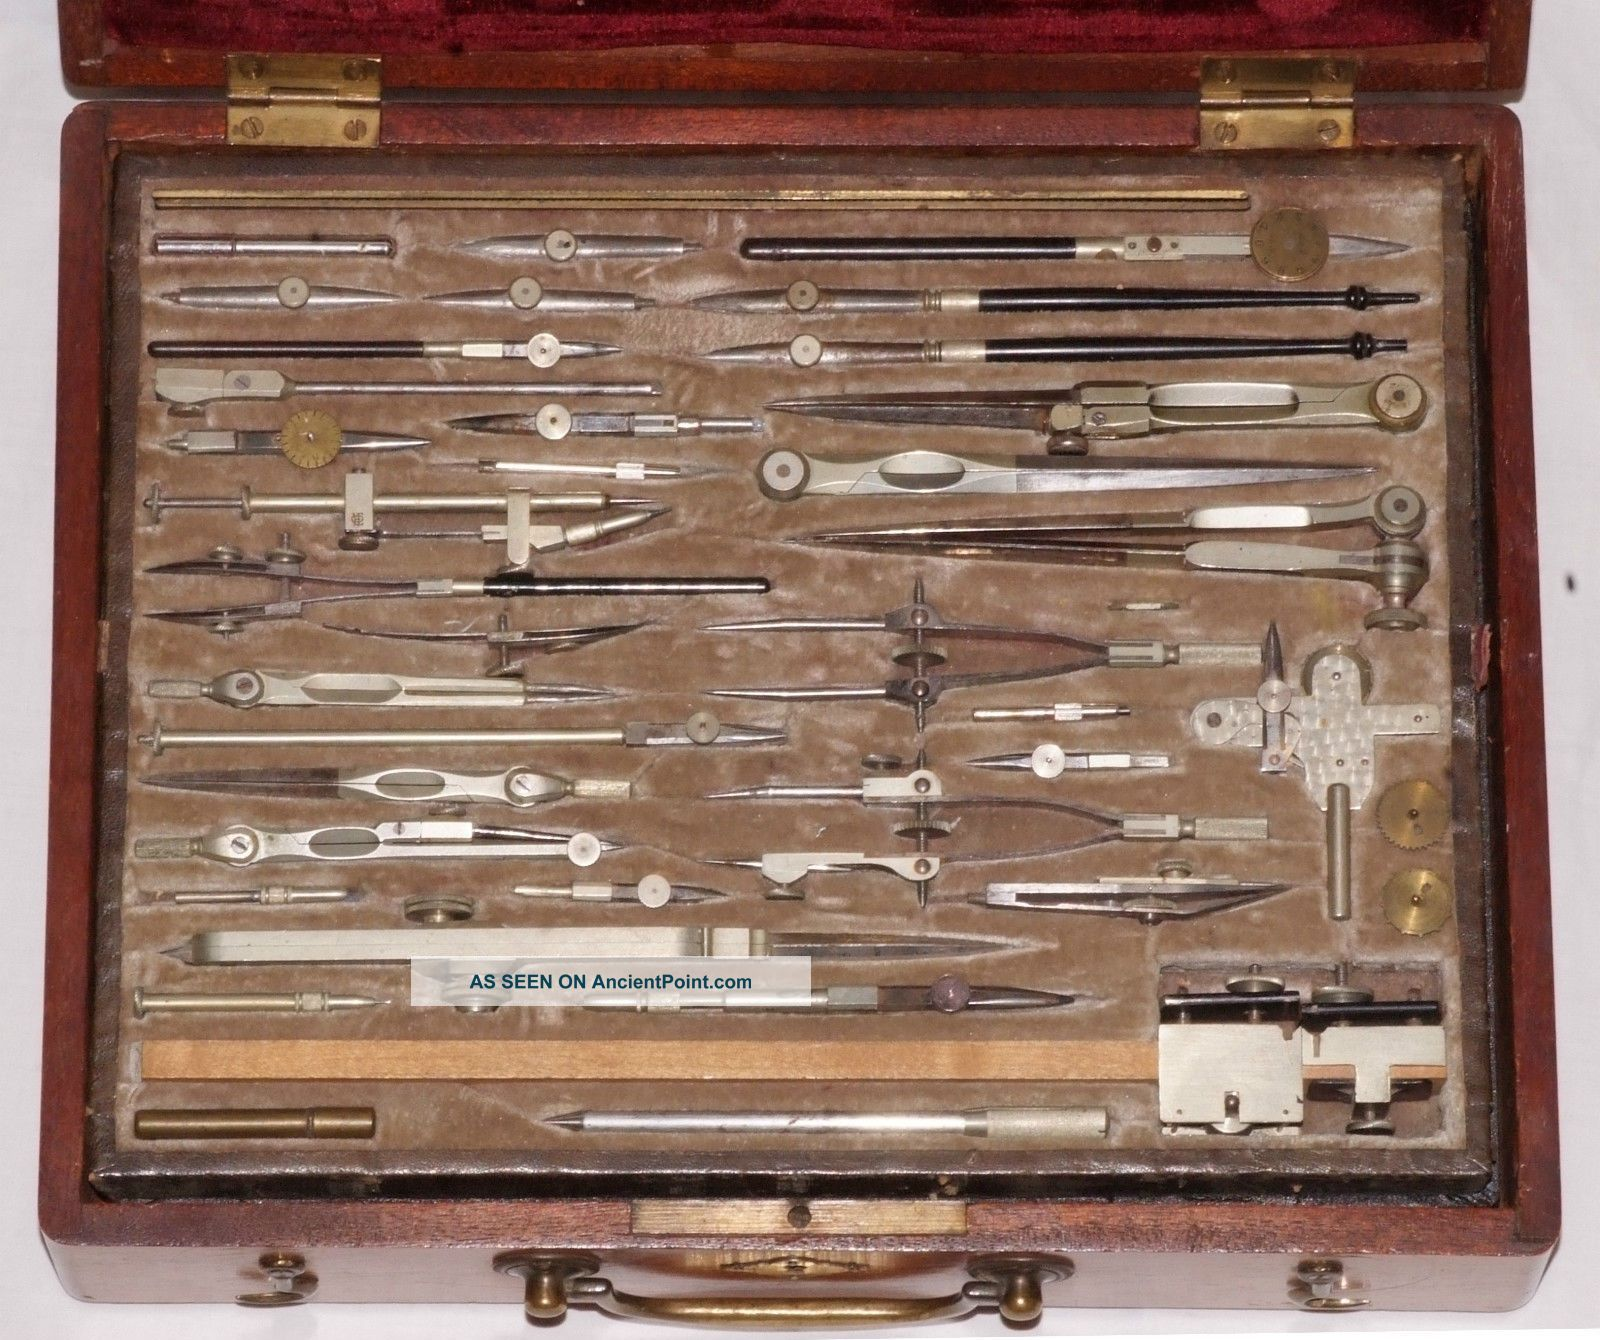 A 19th Century Eo Richter Architect Drawing Instruments